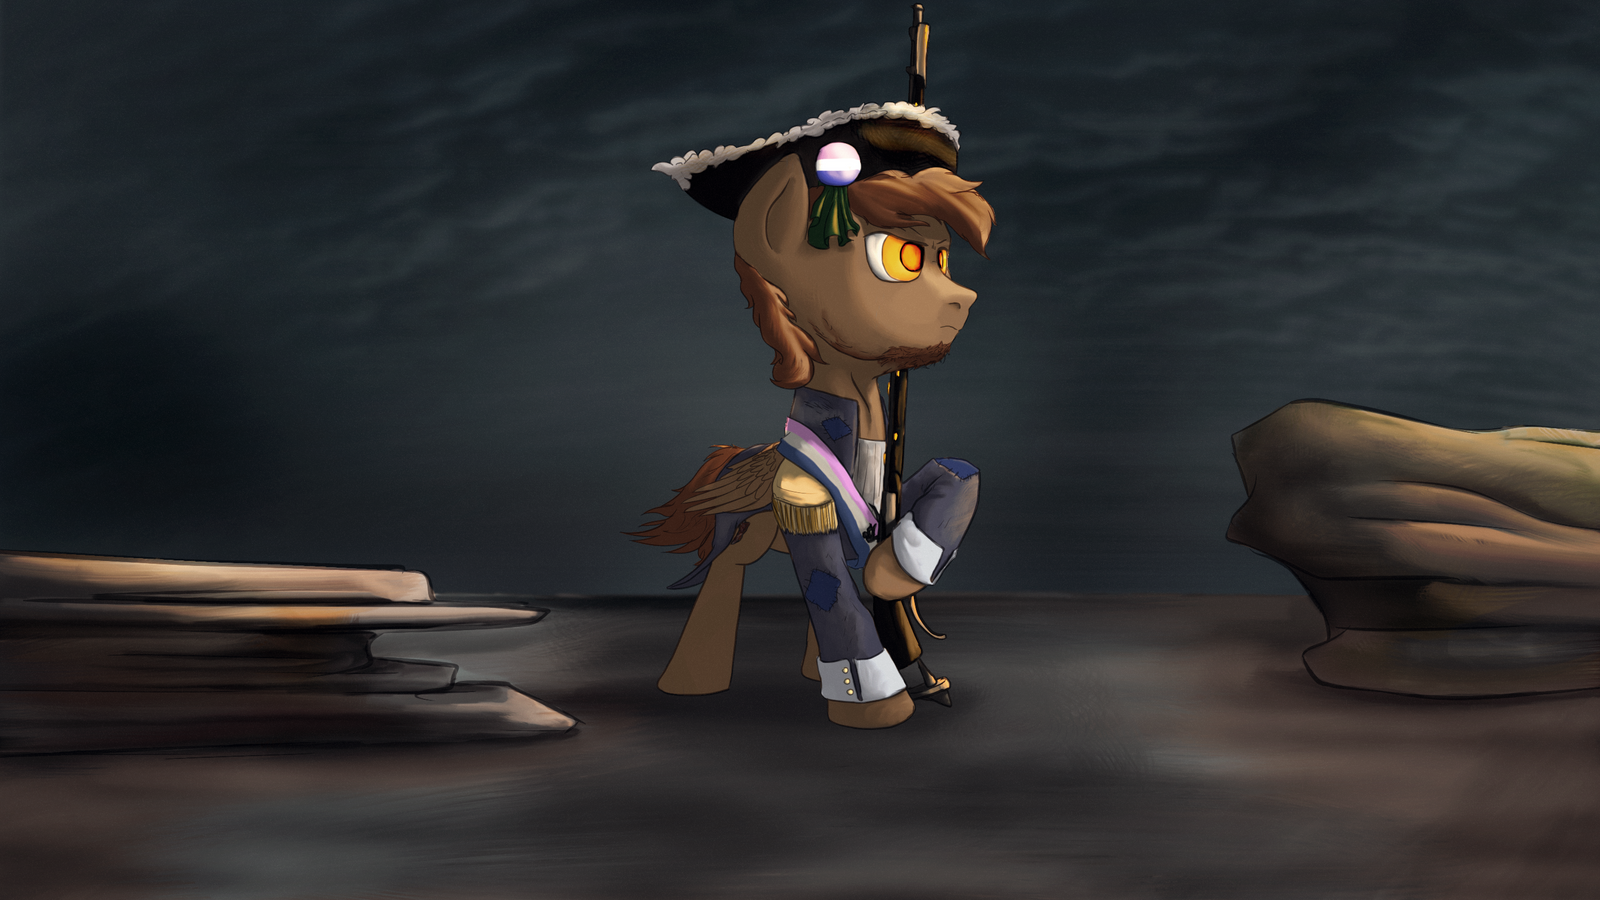 calamity_garde_by_aaronmk-db8cp9b.png